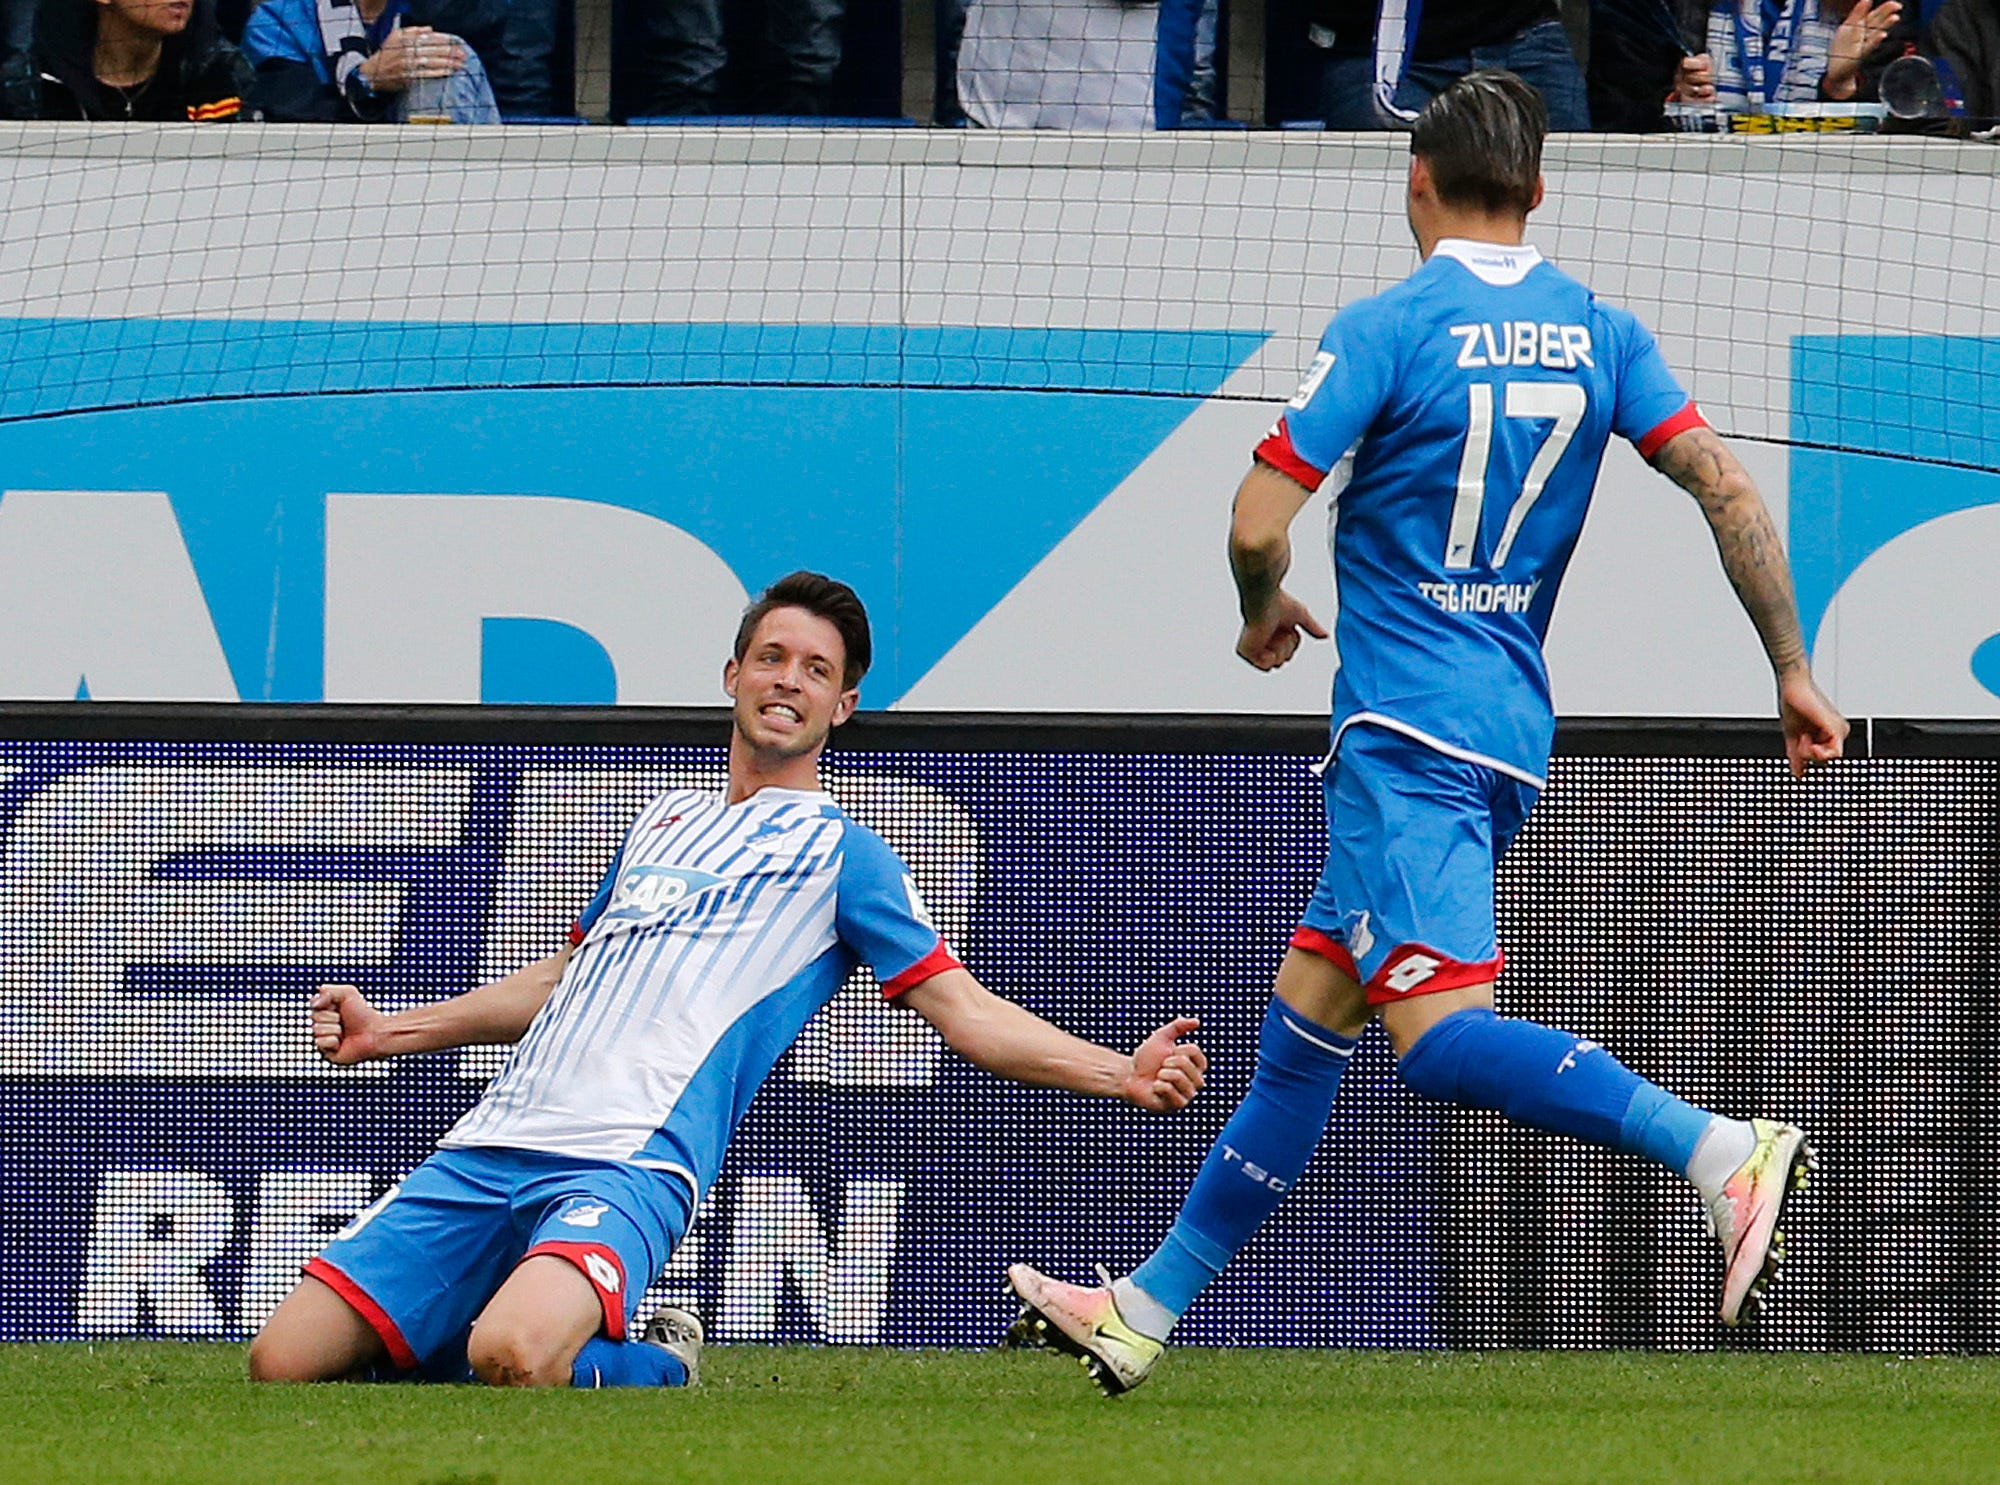 Hoffenheim forward Uth puts himself in World Cup contention